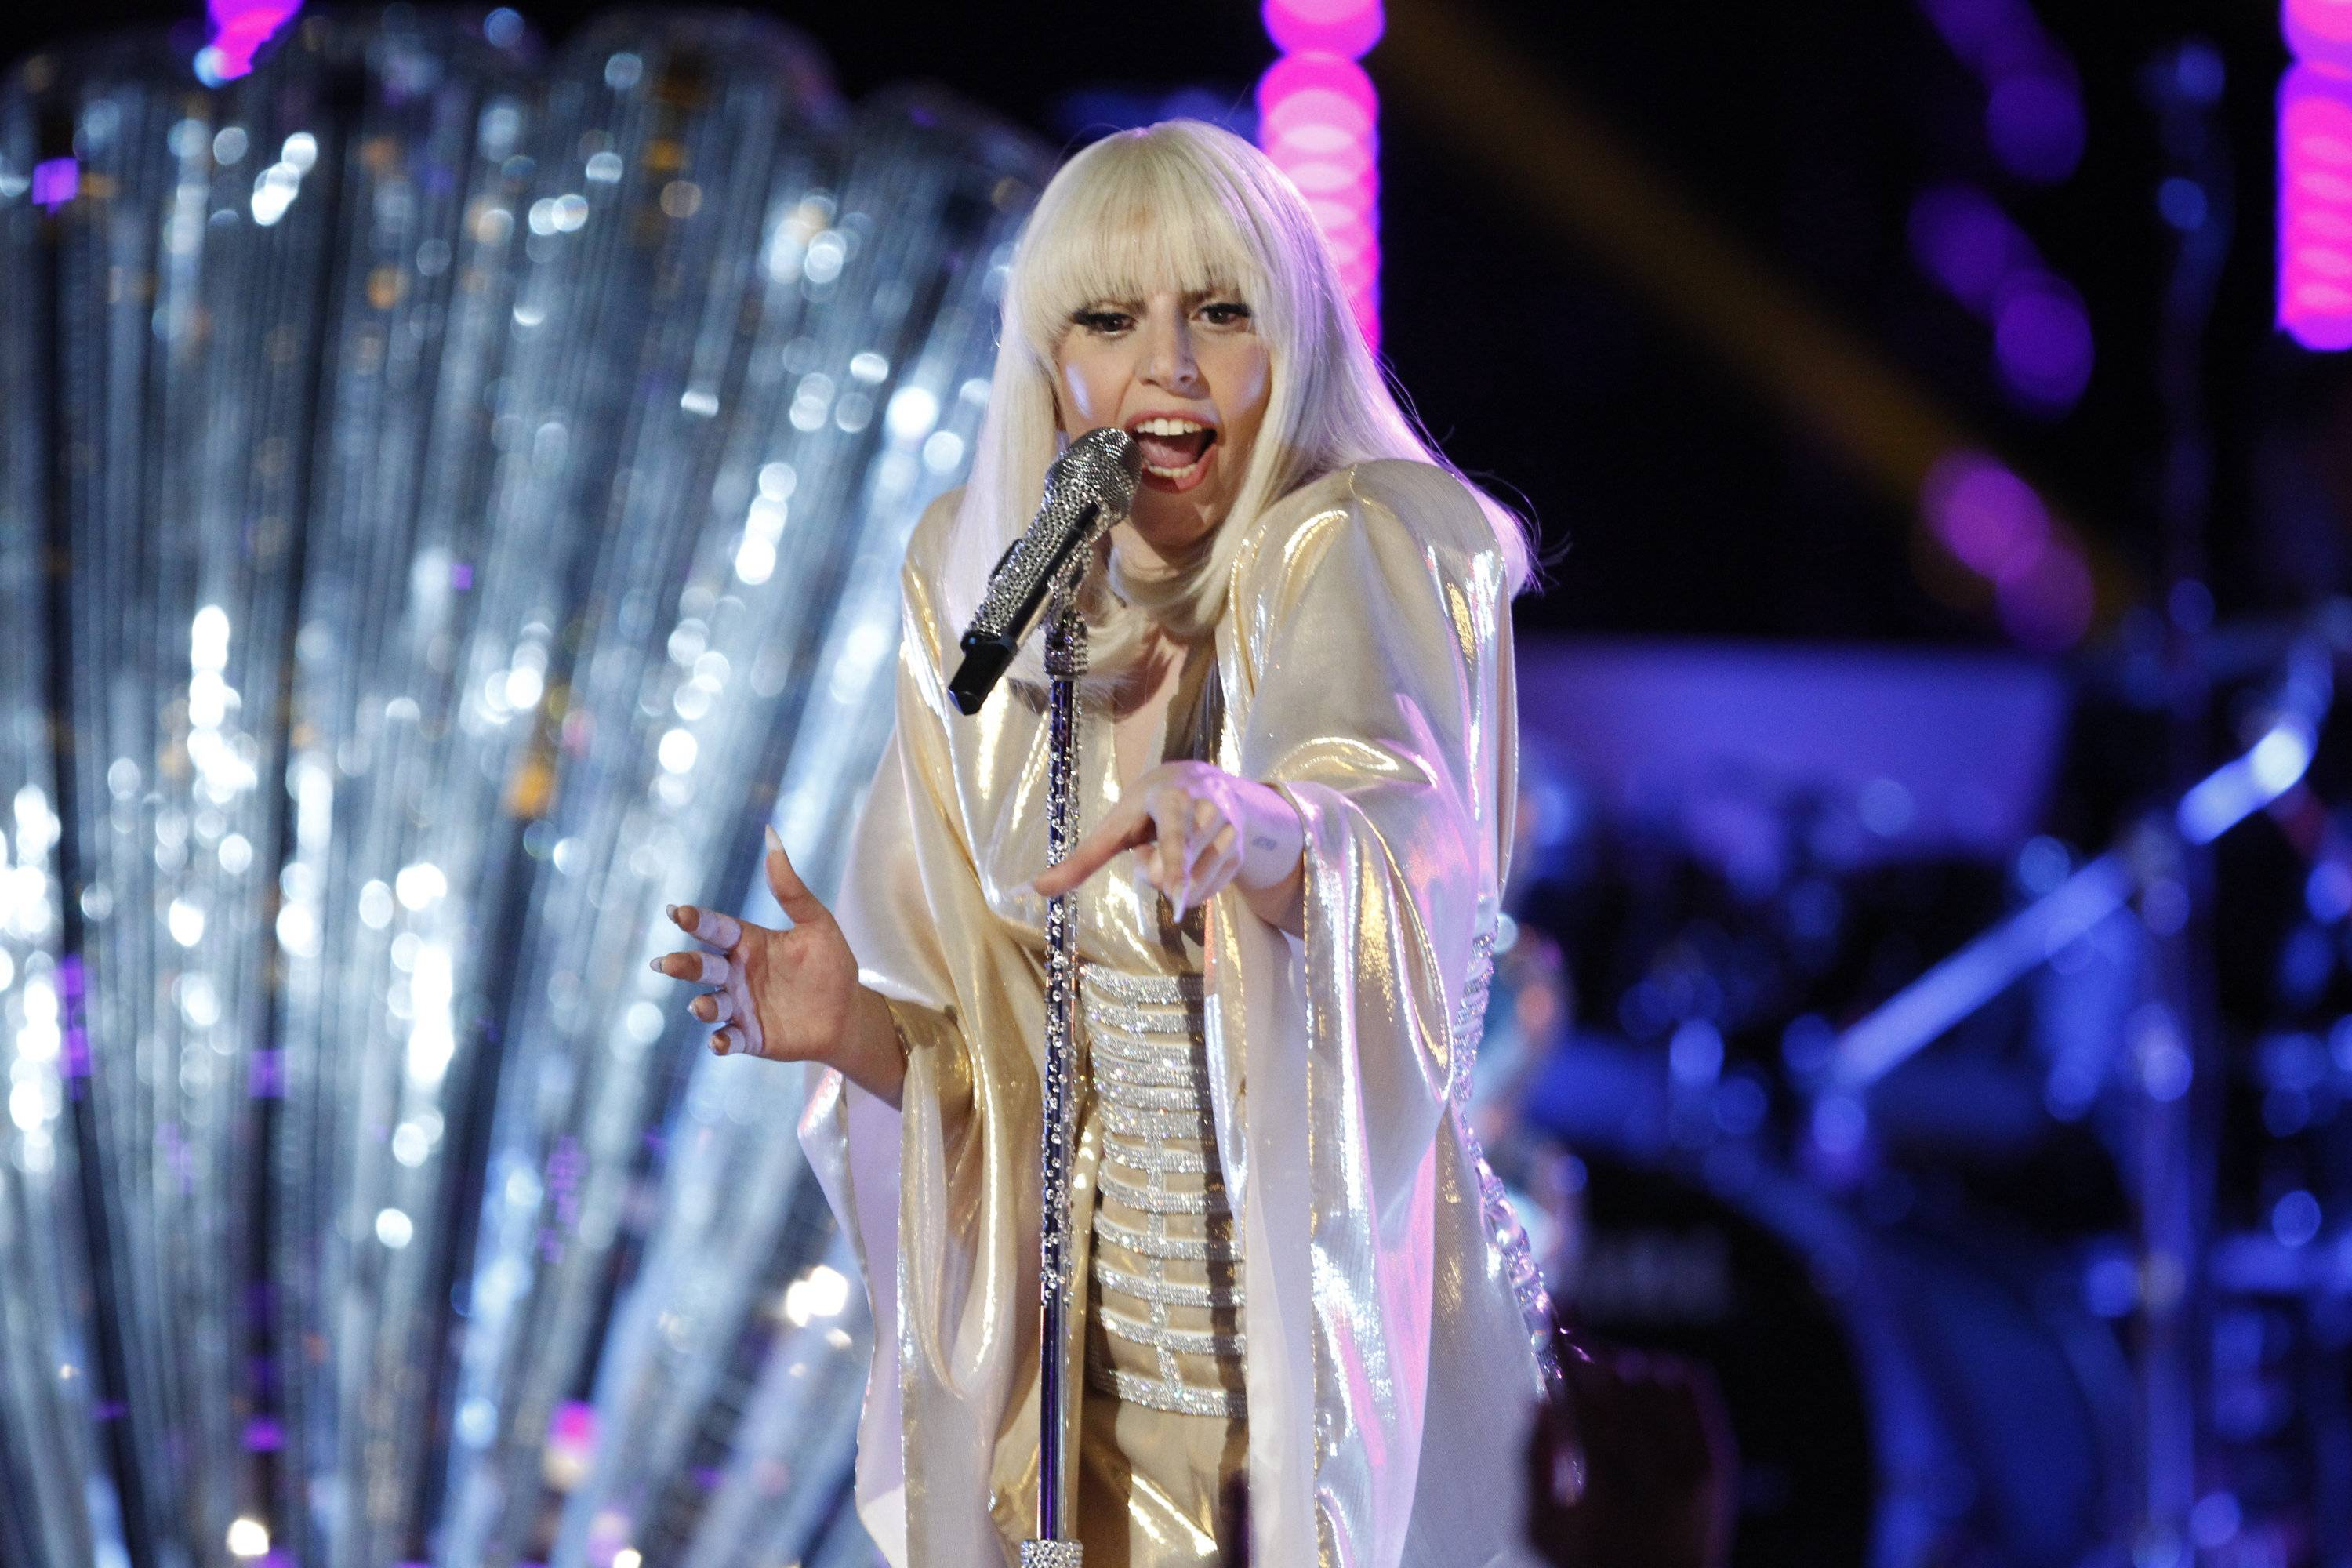 A federal judge has dismissed a copyright lawsuit against Lady Gaga filed by a Chicago songwriter who accused her of stealing parts of one of her songs.